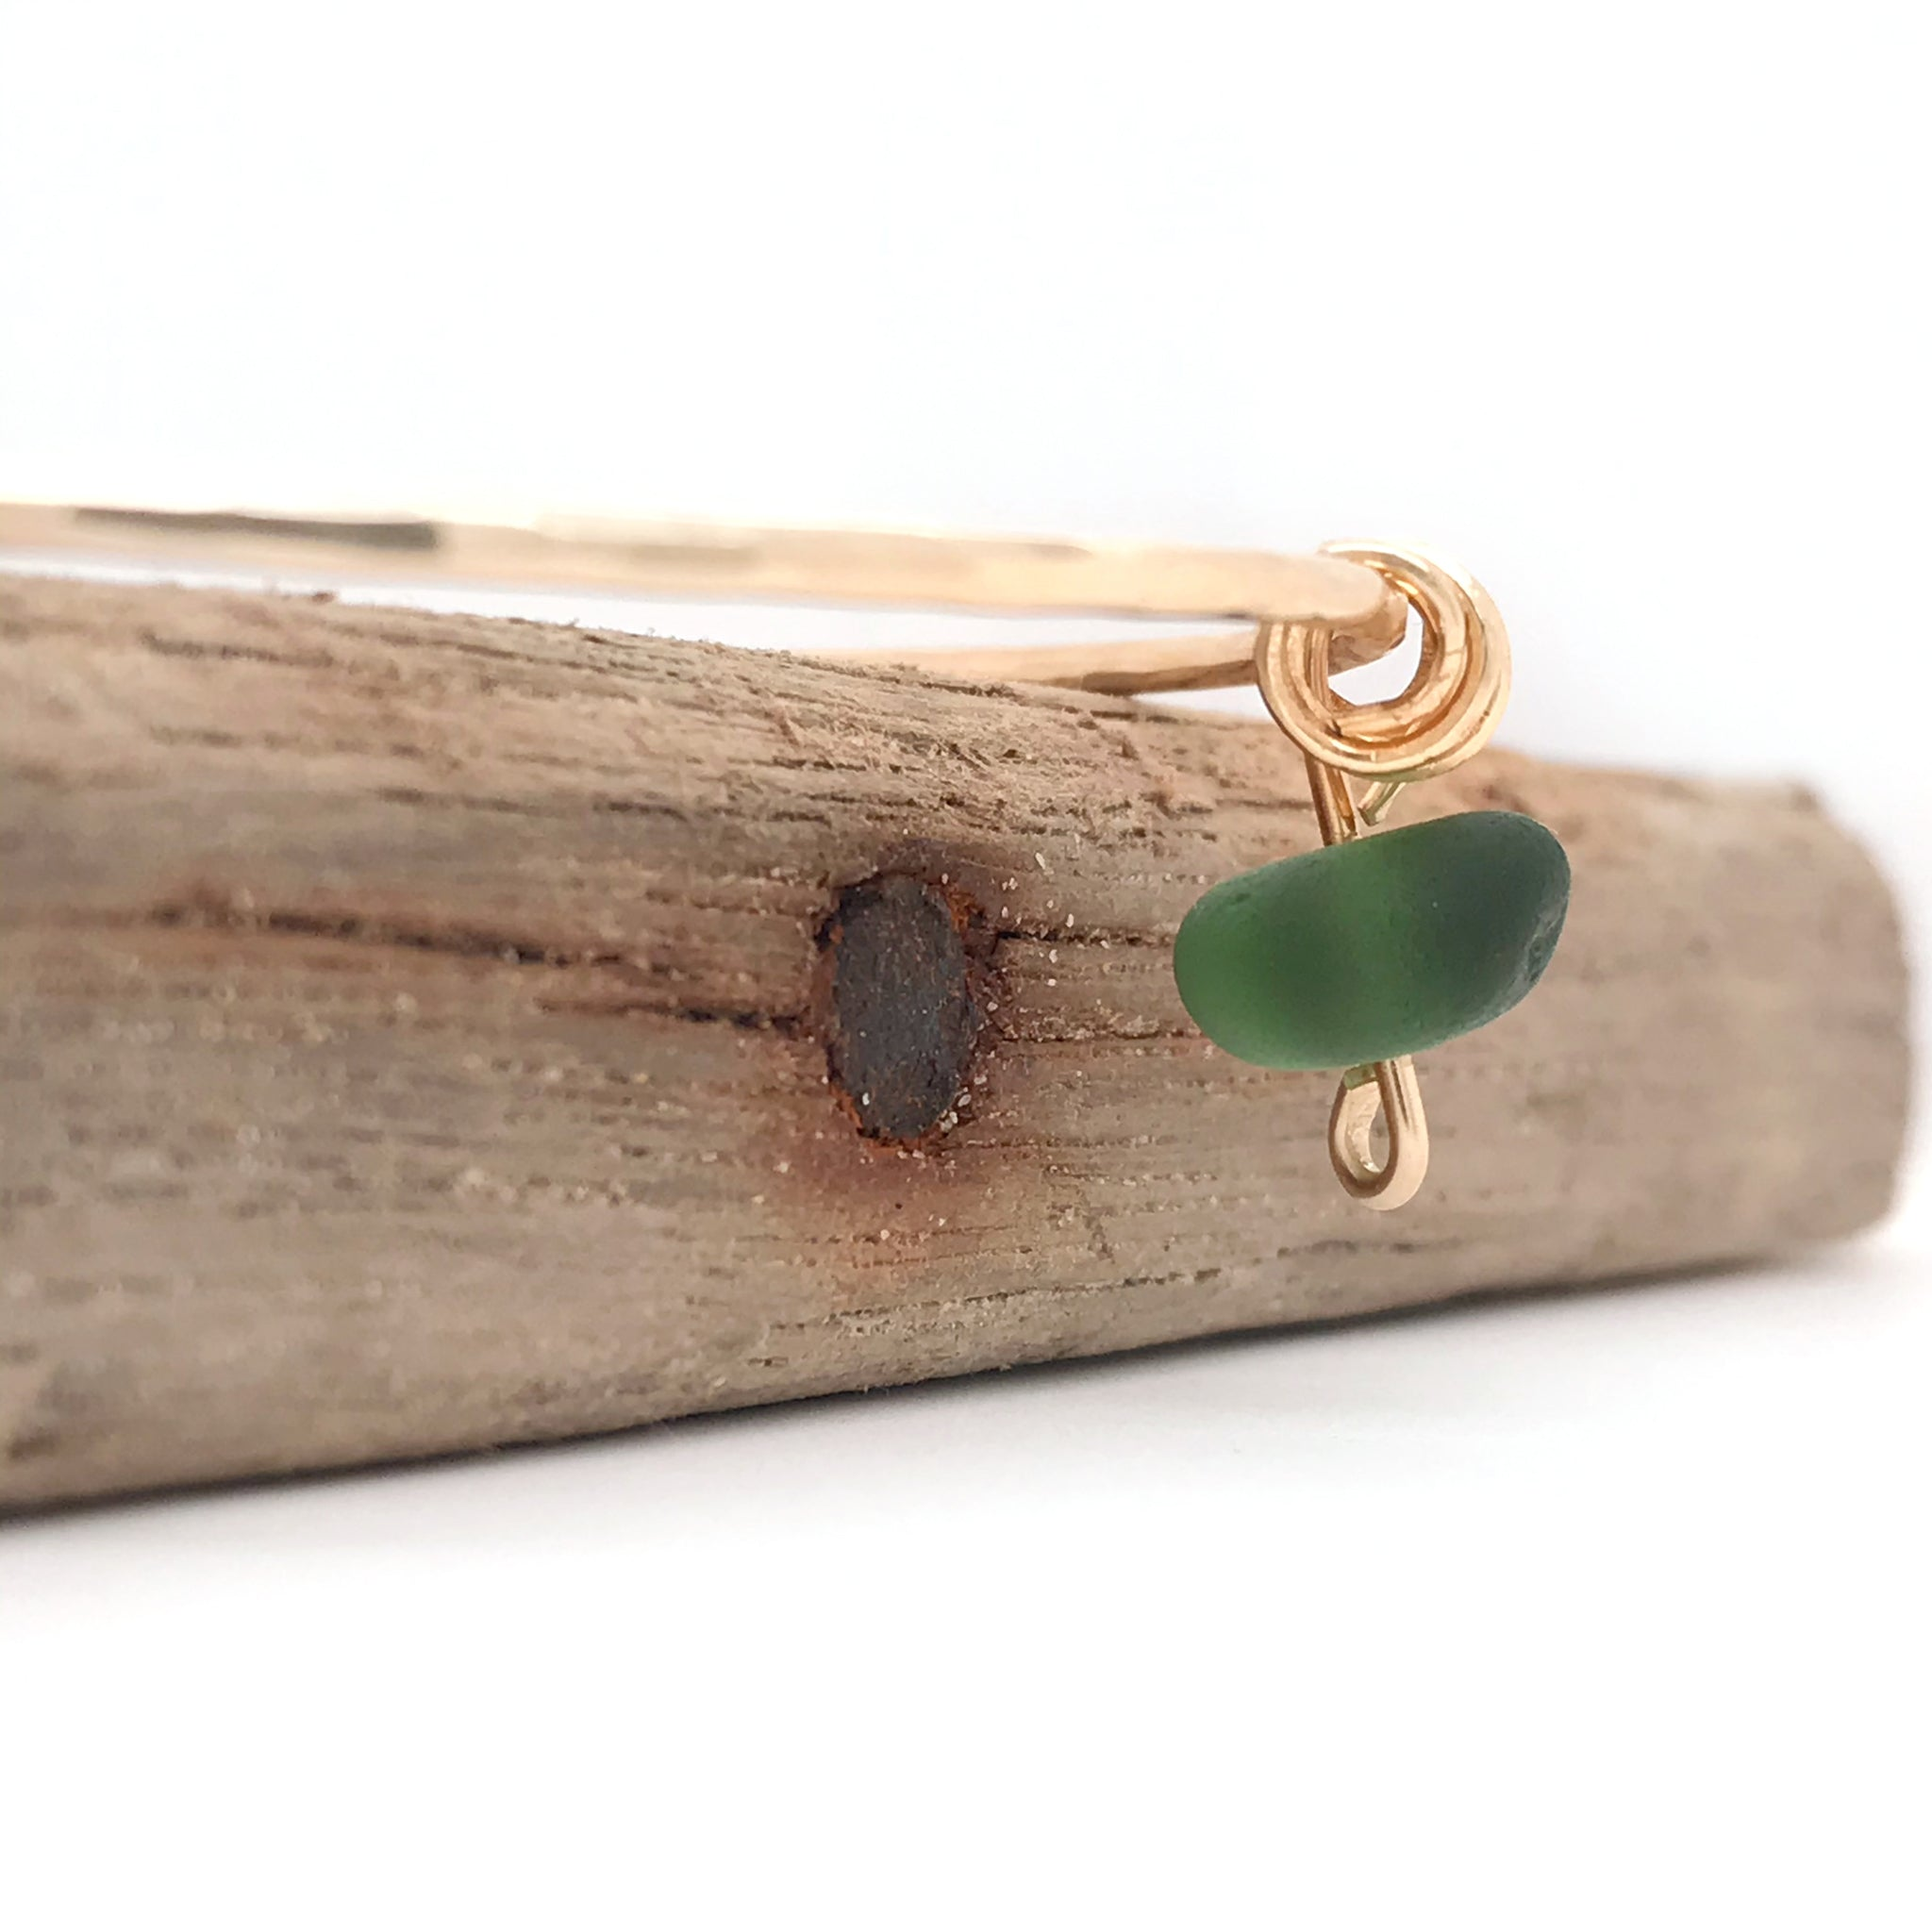 Green beach glass on gold Bangle - kriket broadhurst handcrafted jewellery